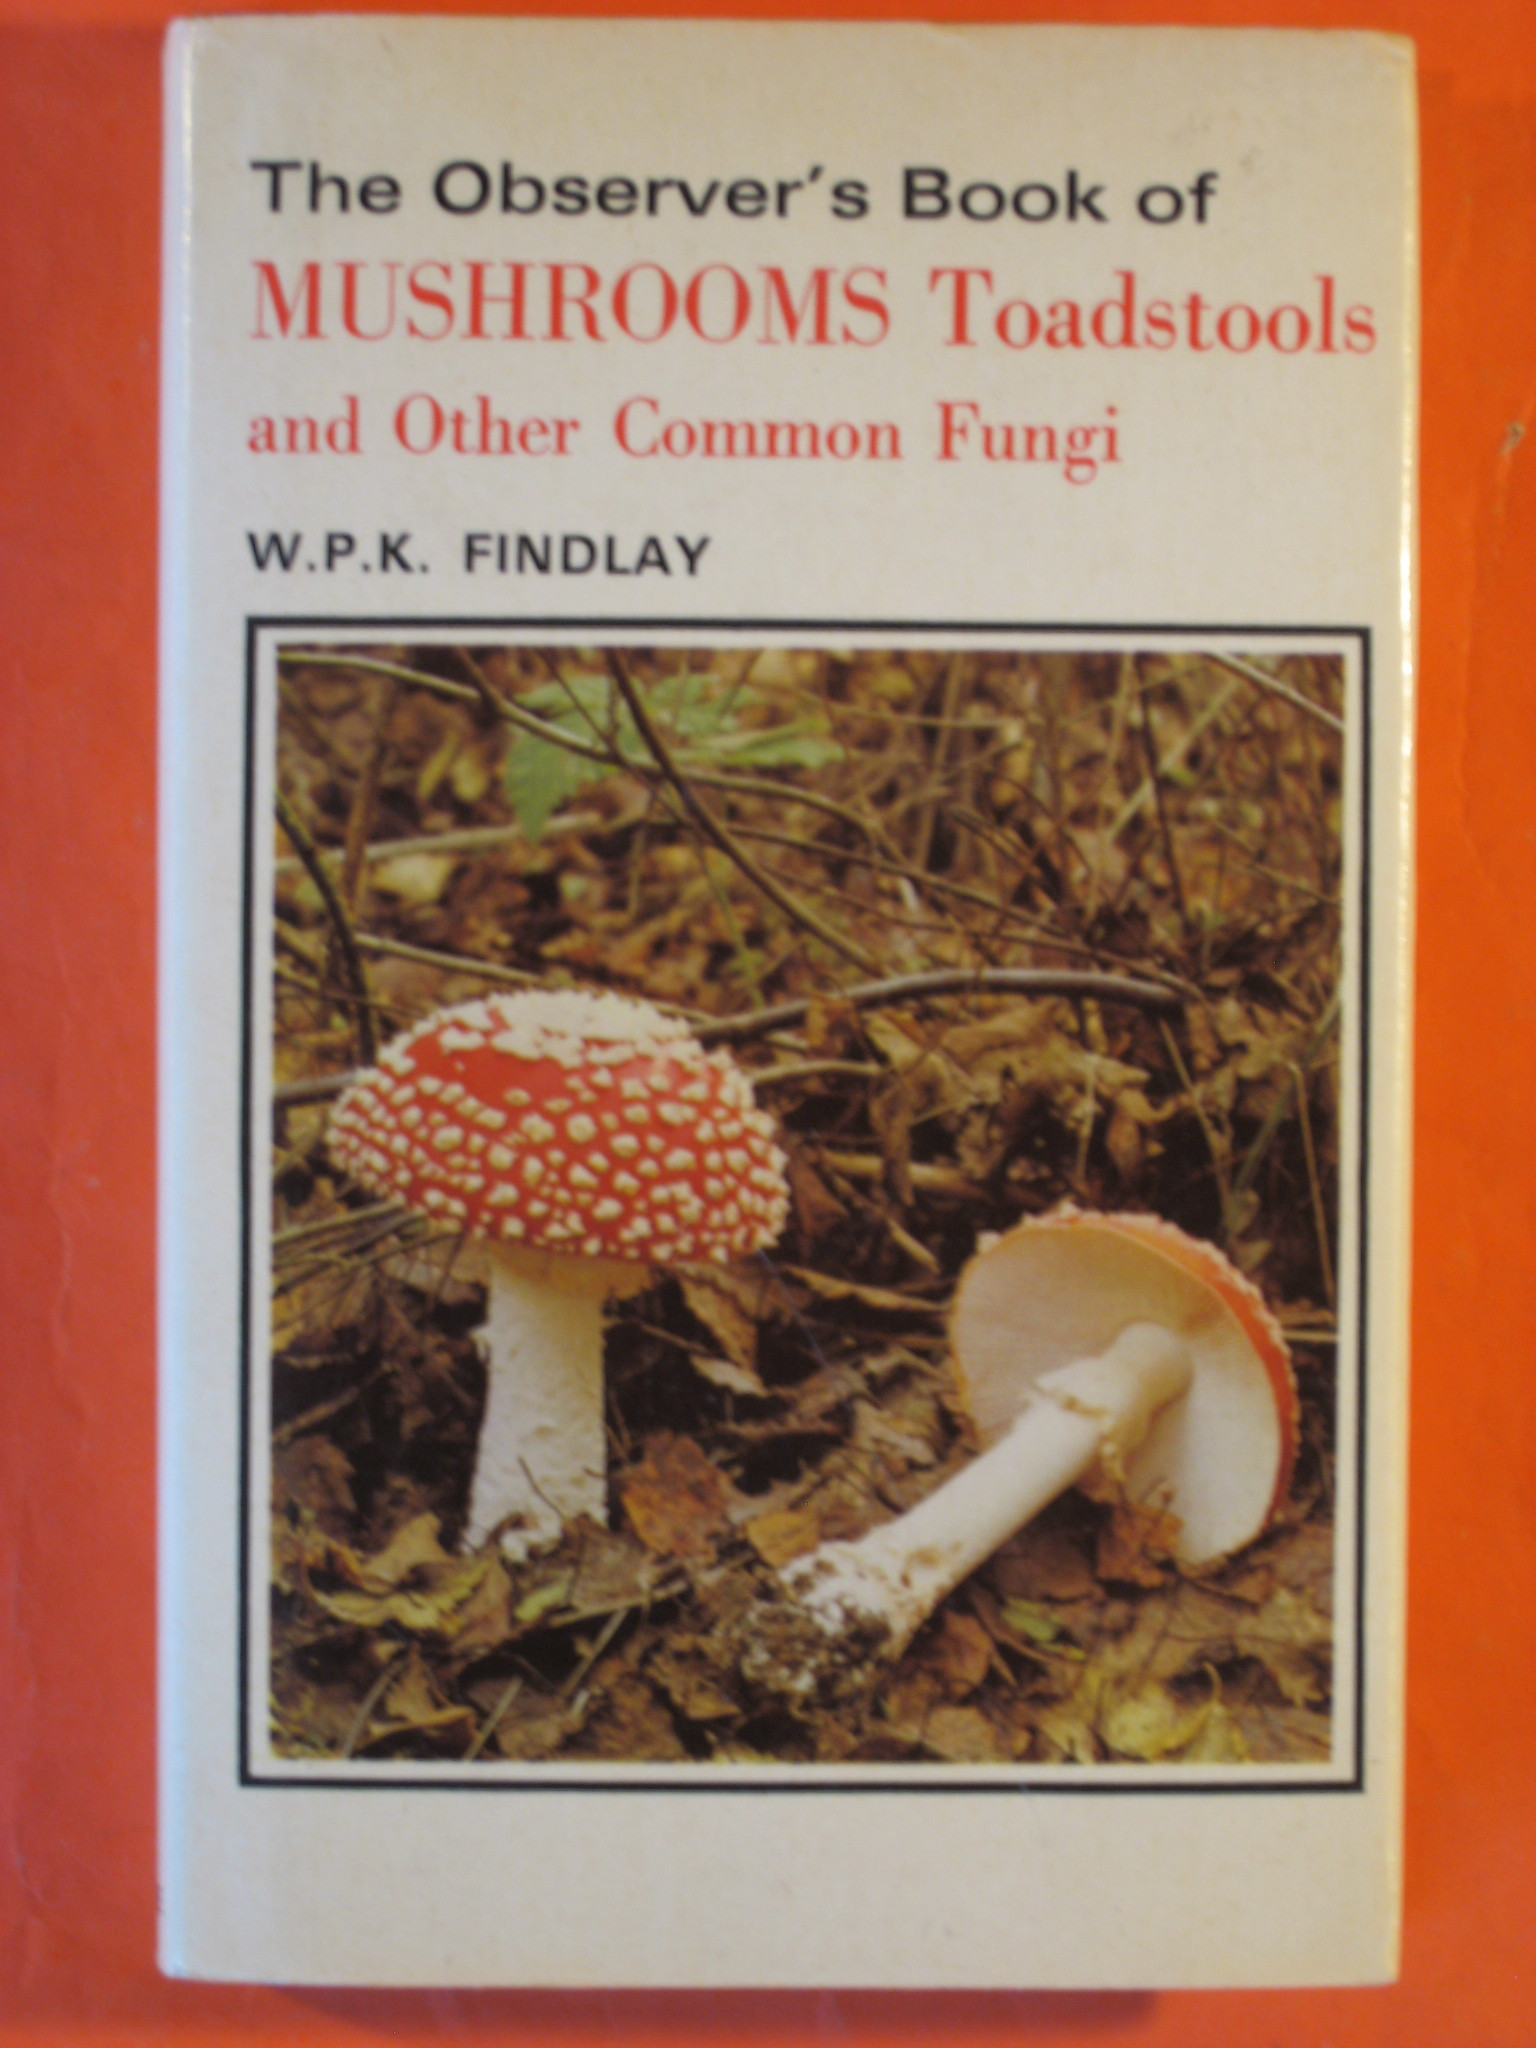 The Observer's Book of Mushrooms, Toadstools and Other Common Fungi, Findlay, W.P.K.